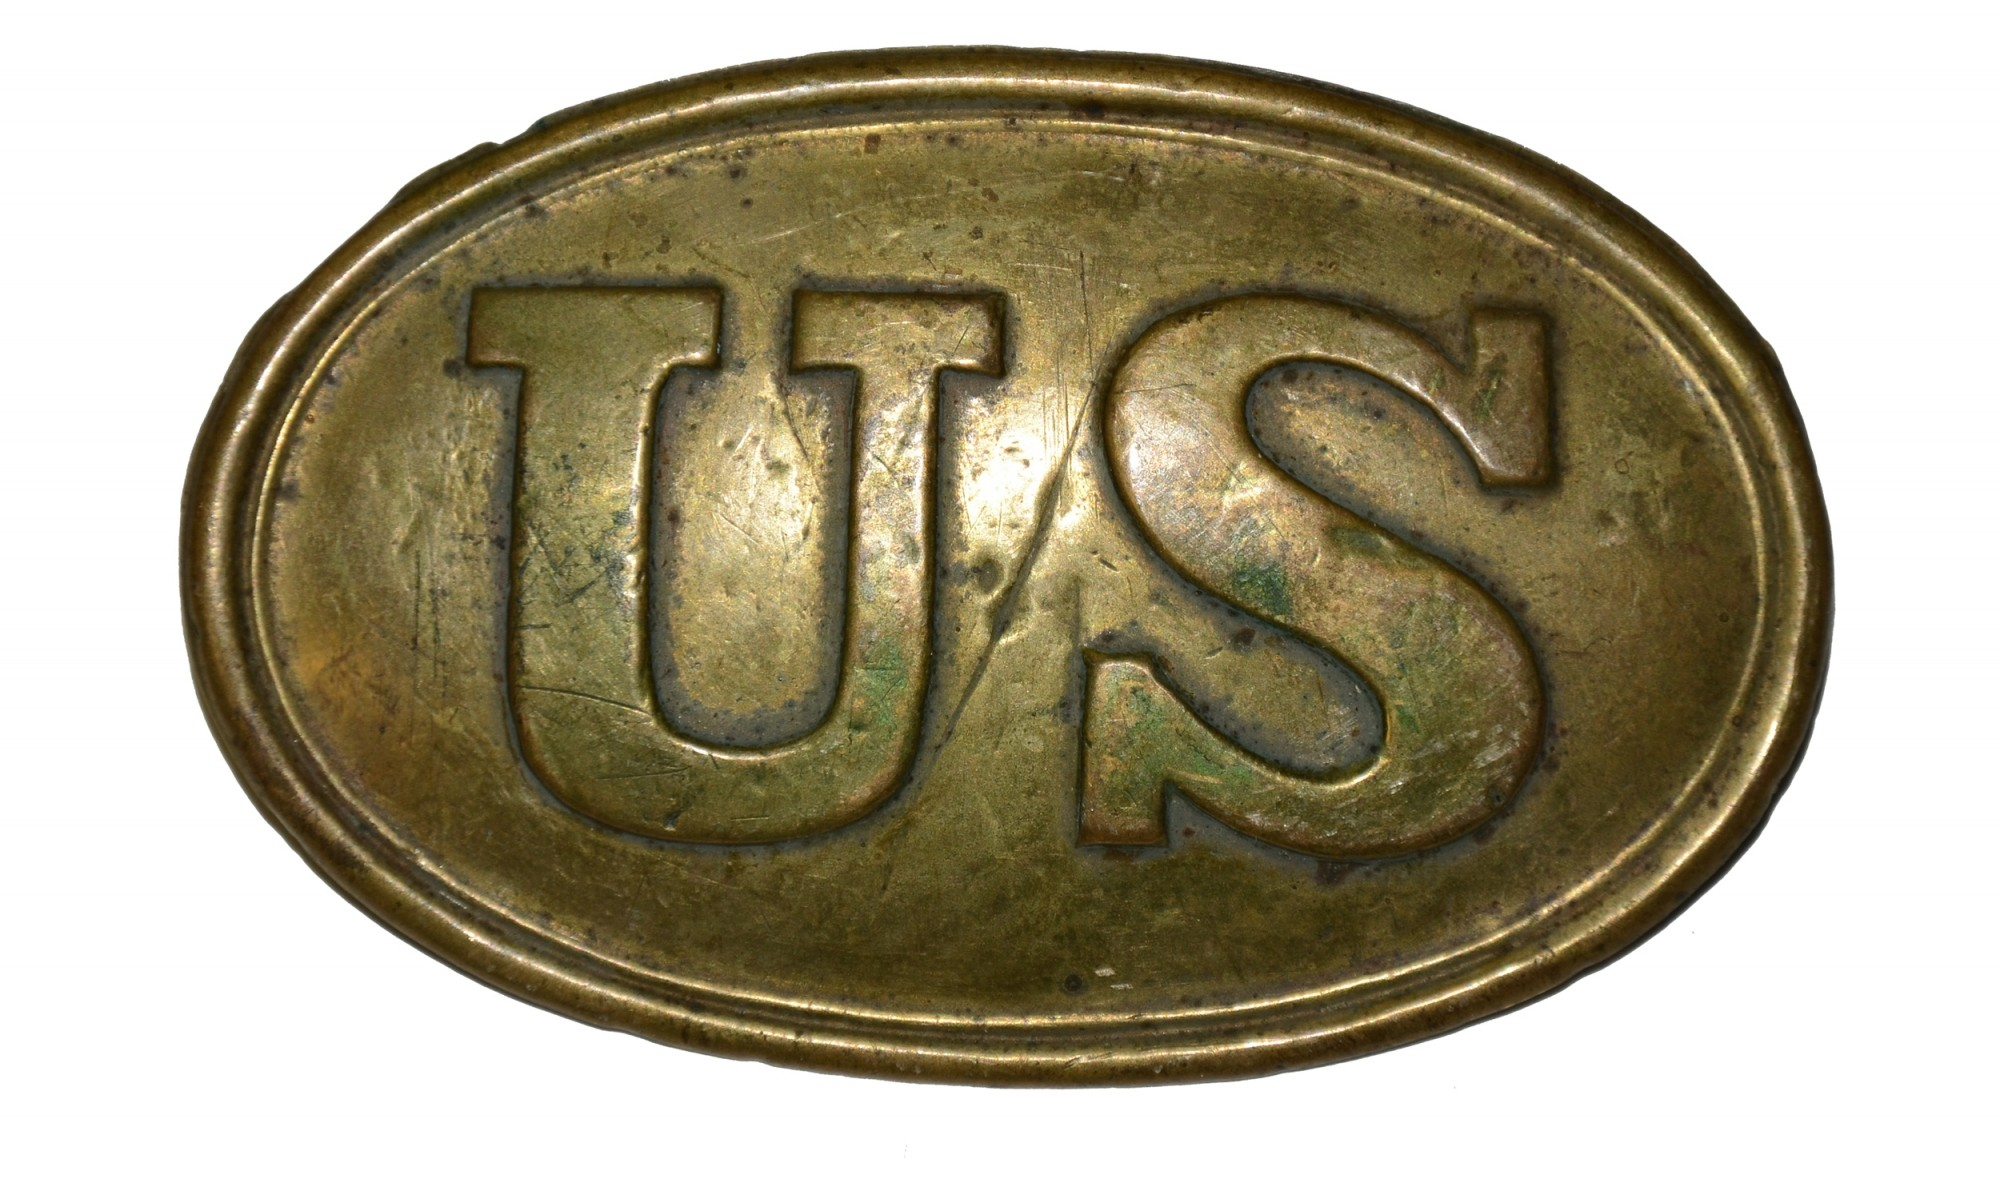 US PATTERN 1839 CARTRIDGE BOX PLATE